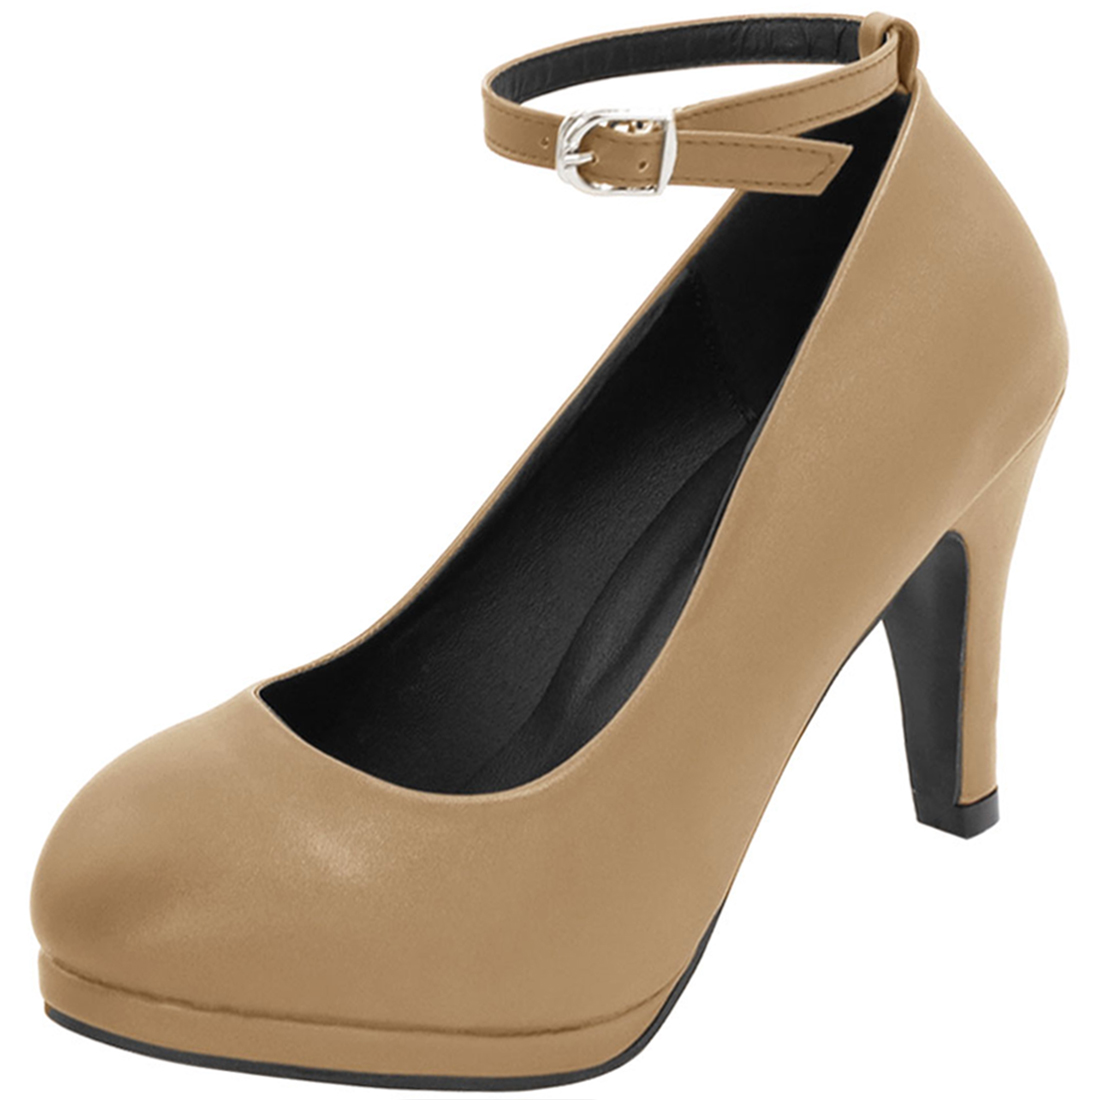 Woman Rounded Toe Mid Heel Length Ankle Strap Pumps Dark Beige US 8.5